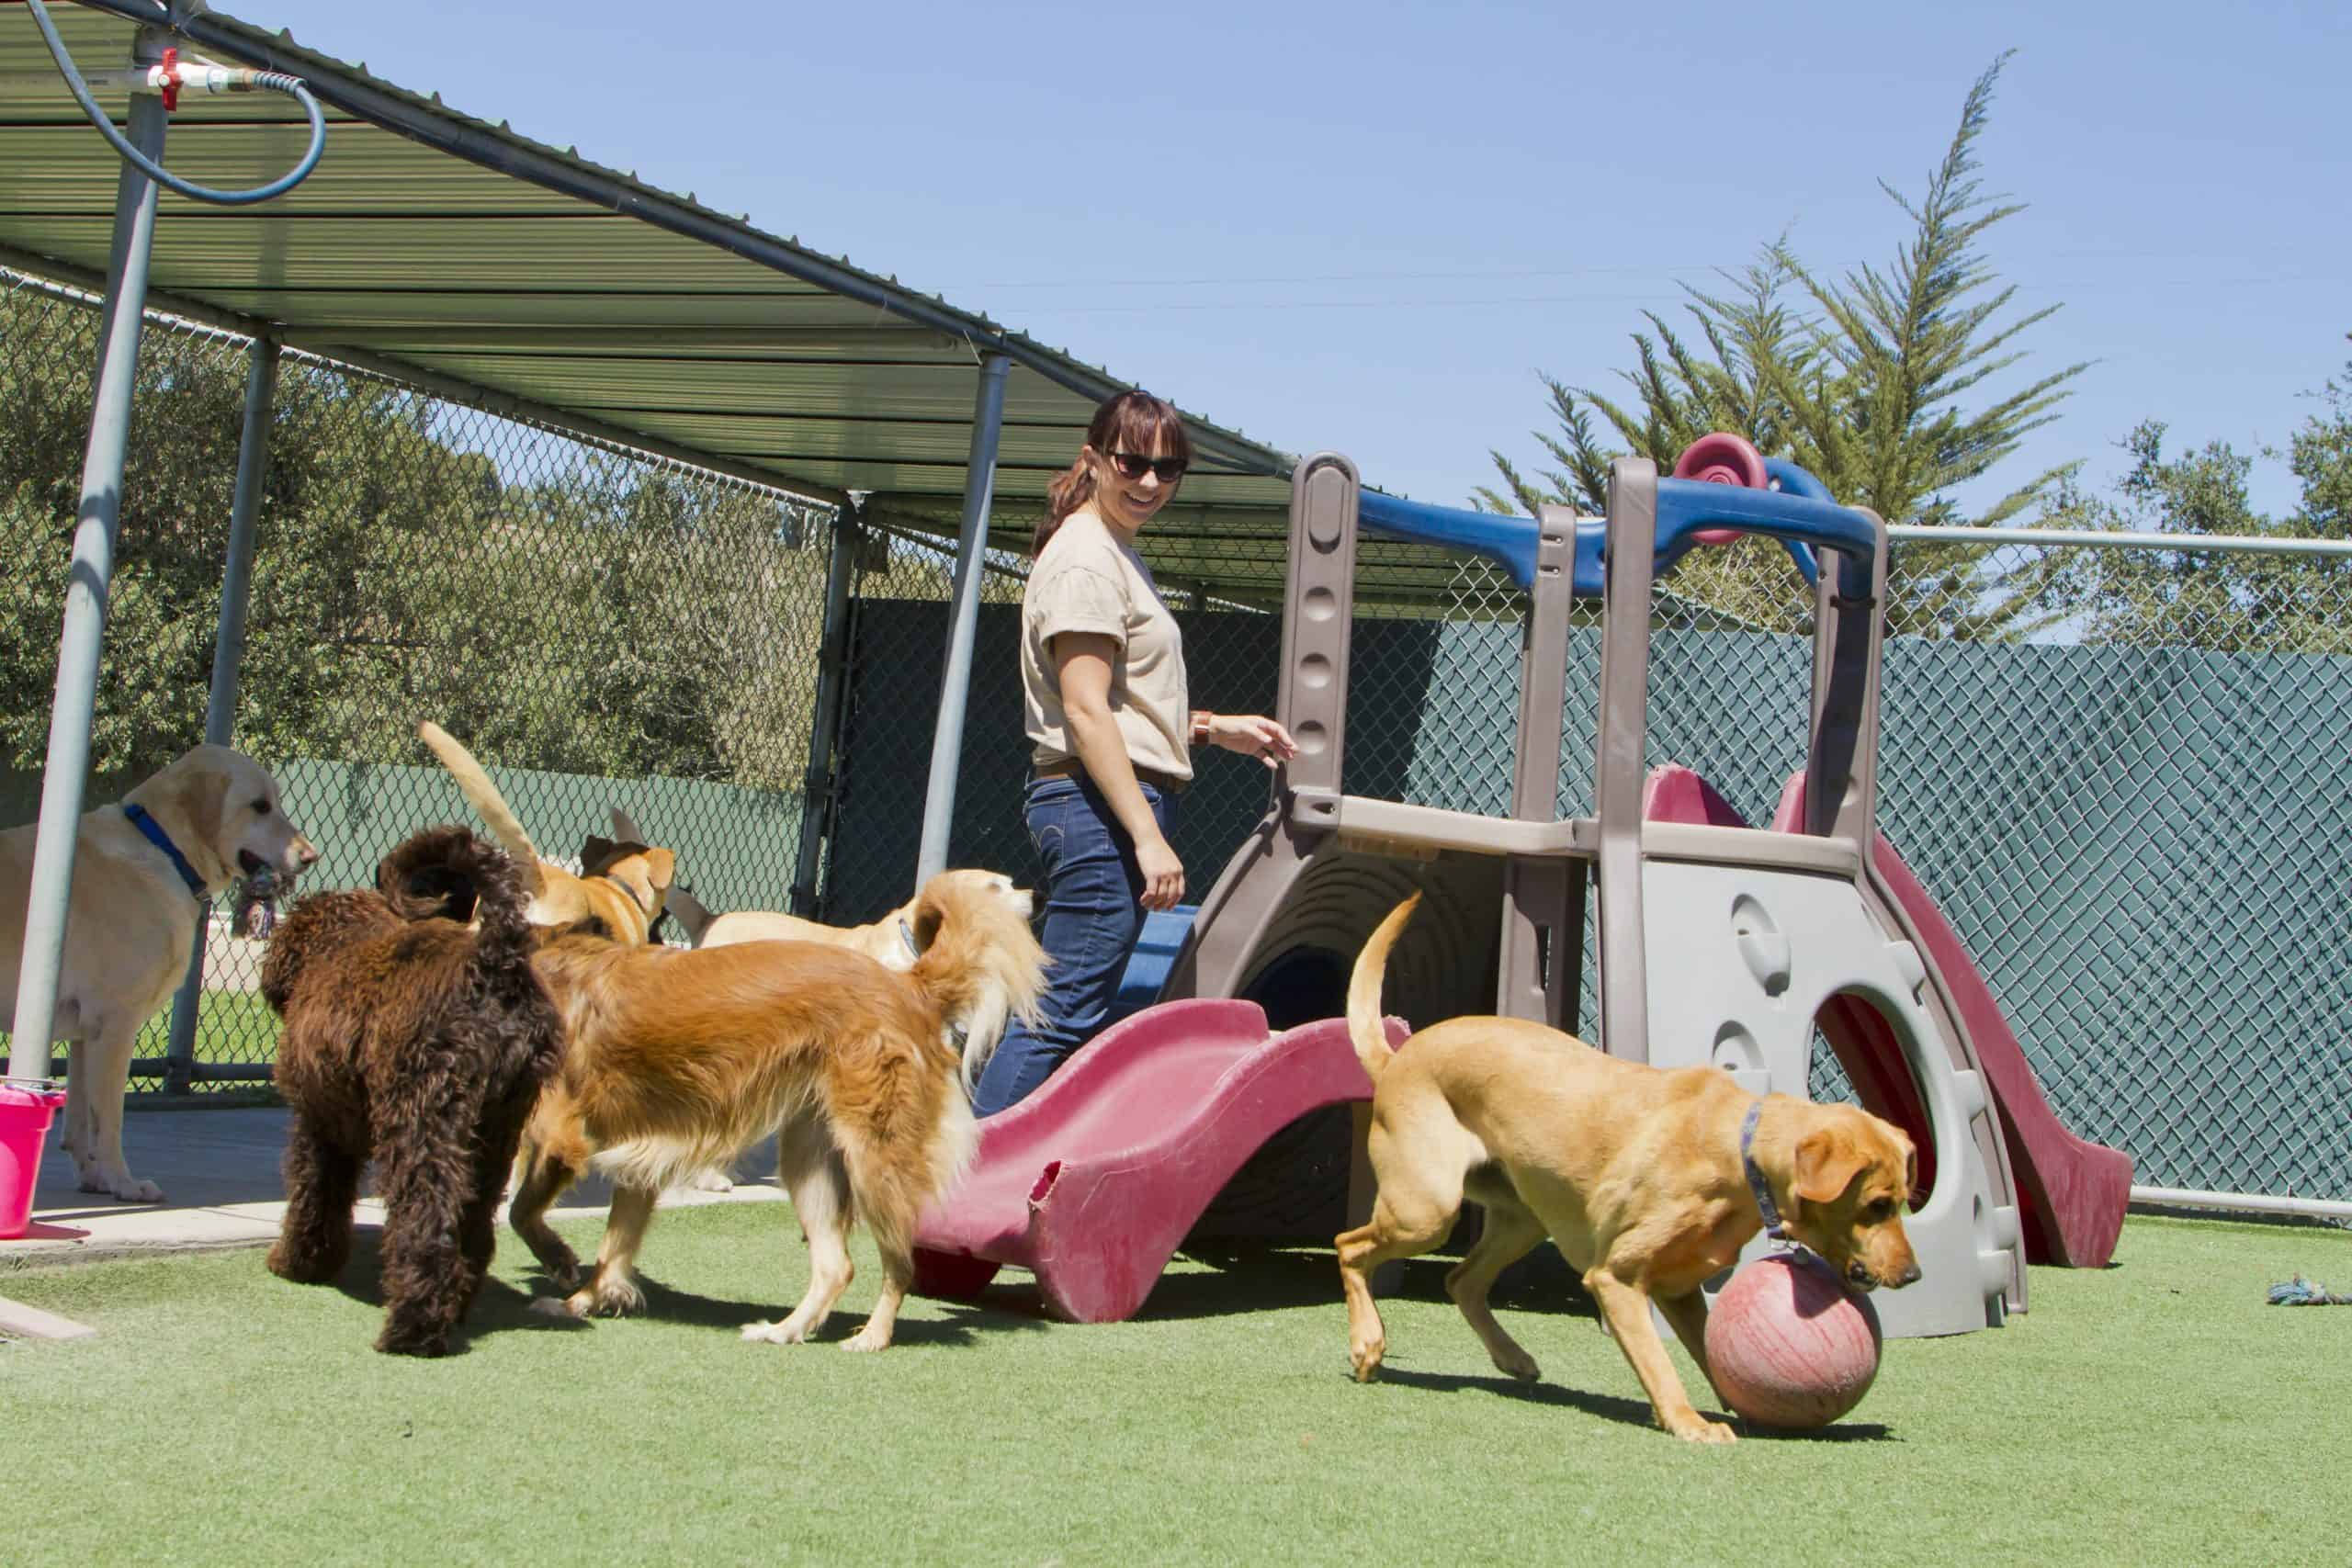 Dogs play at doggie daycare. Dogs are very social by nature and like being around both humans and other pets. So whether you have a friendly puppy or a rather reserved dog, doggie daycares are an excellent way to enhance your companion's social skills.